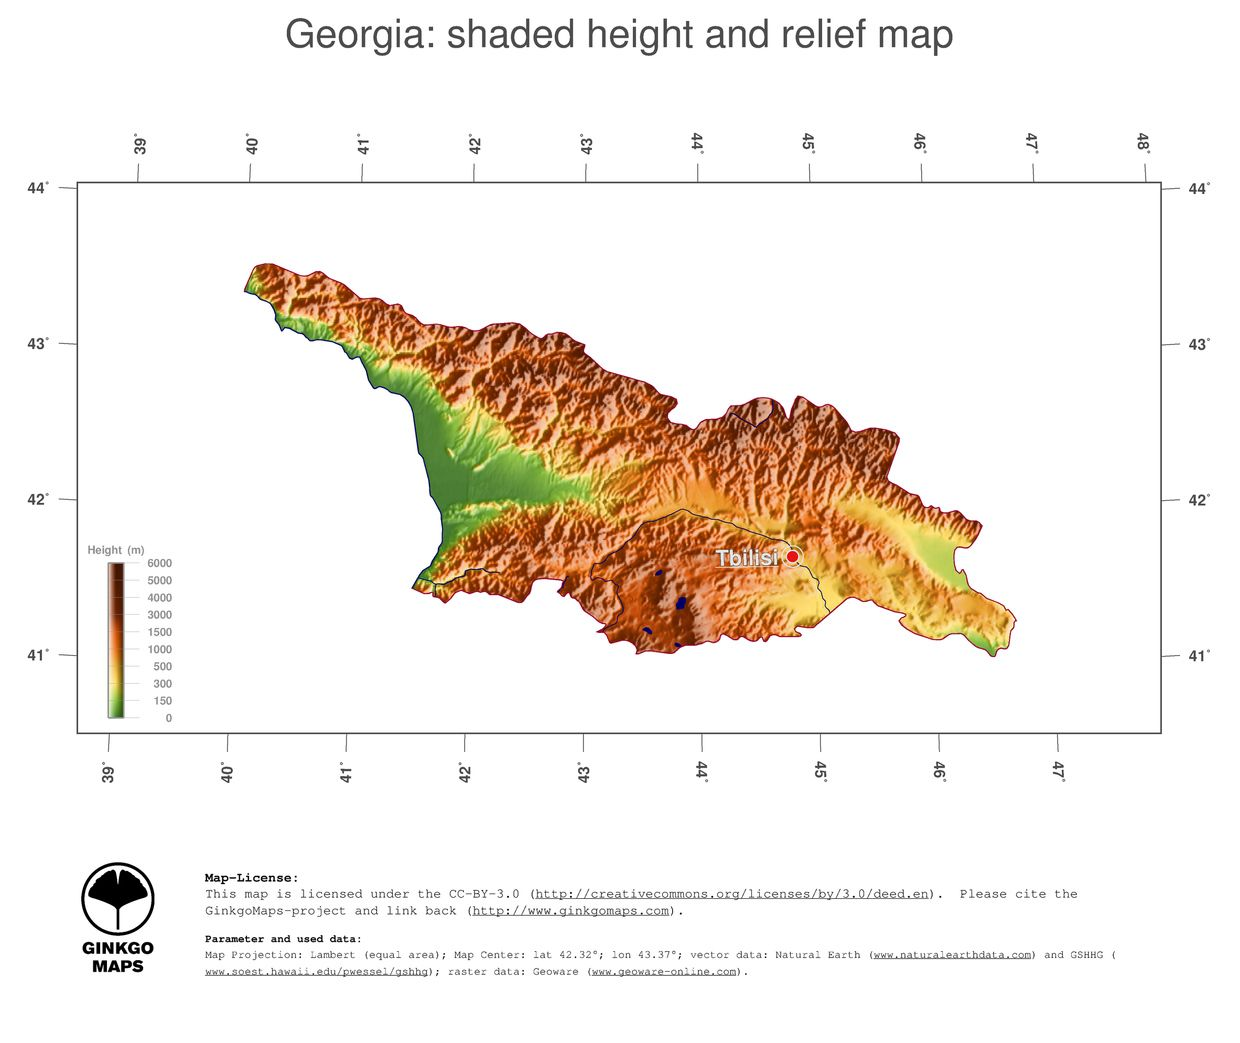 Topo Map Of Georgia.Topographical Map Of Georgia Shaded Height And Relief Map Of